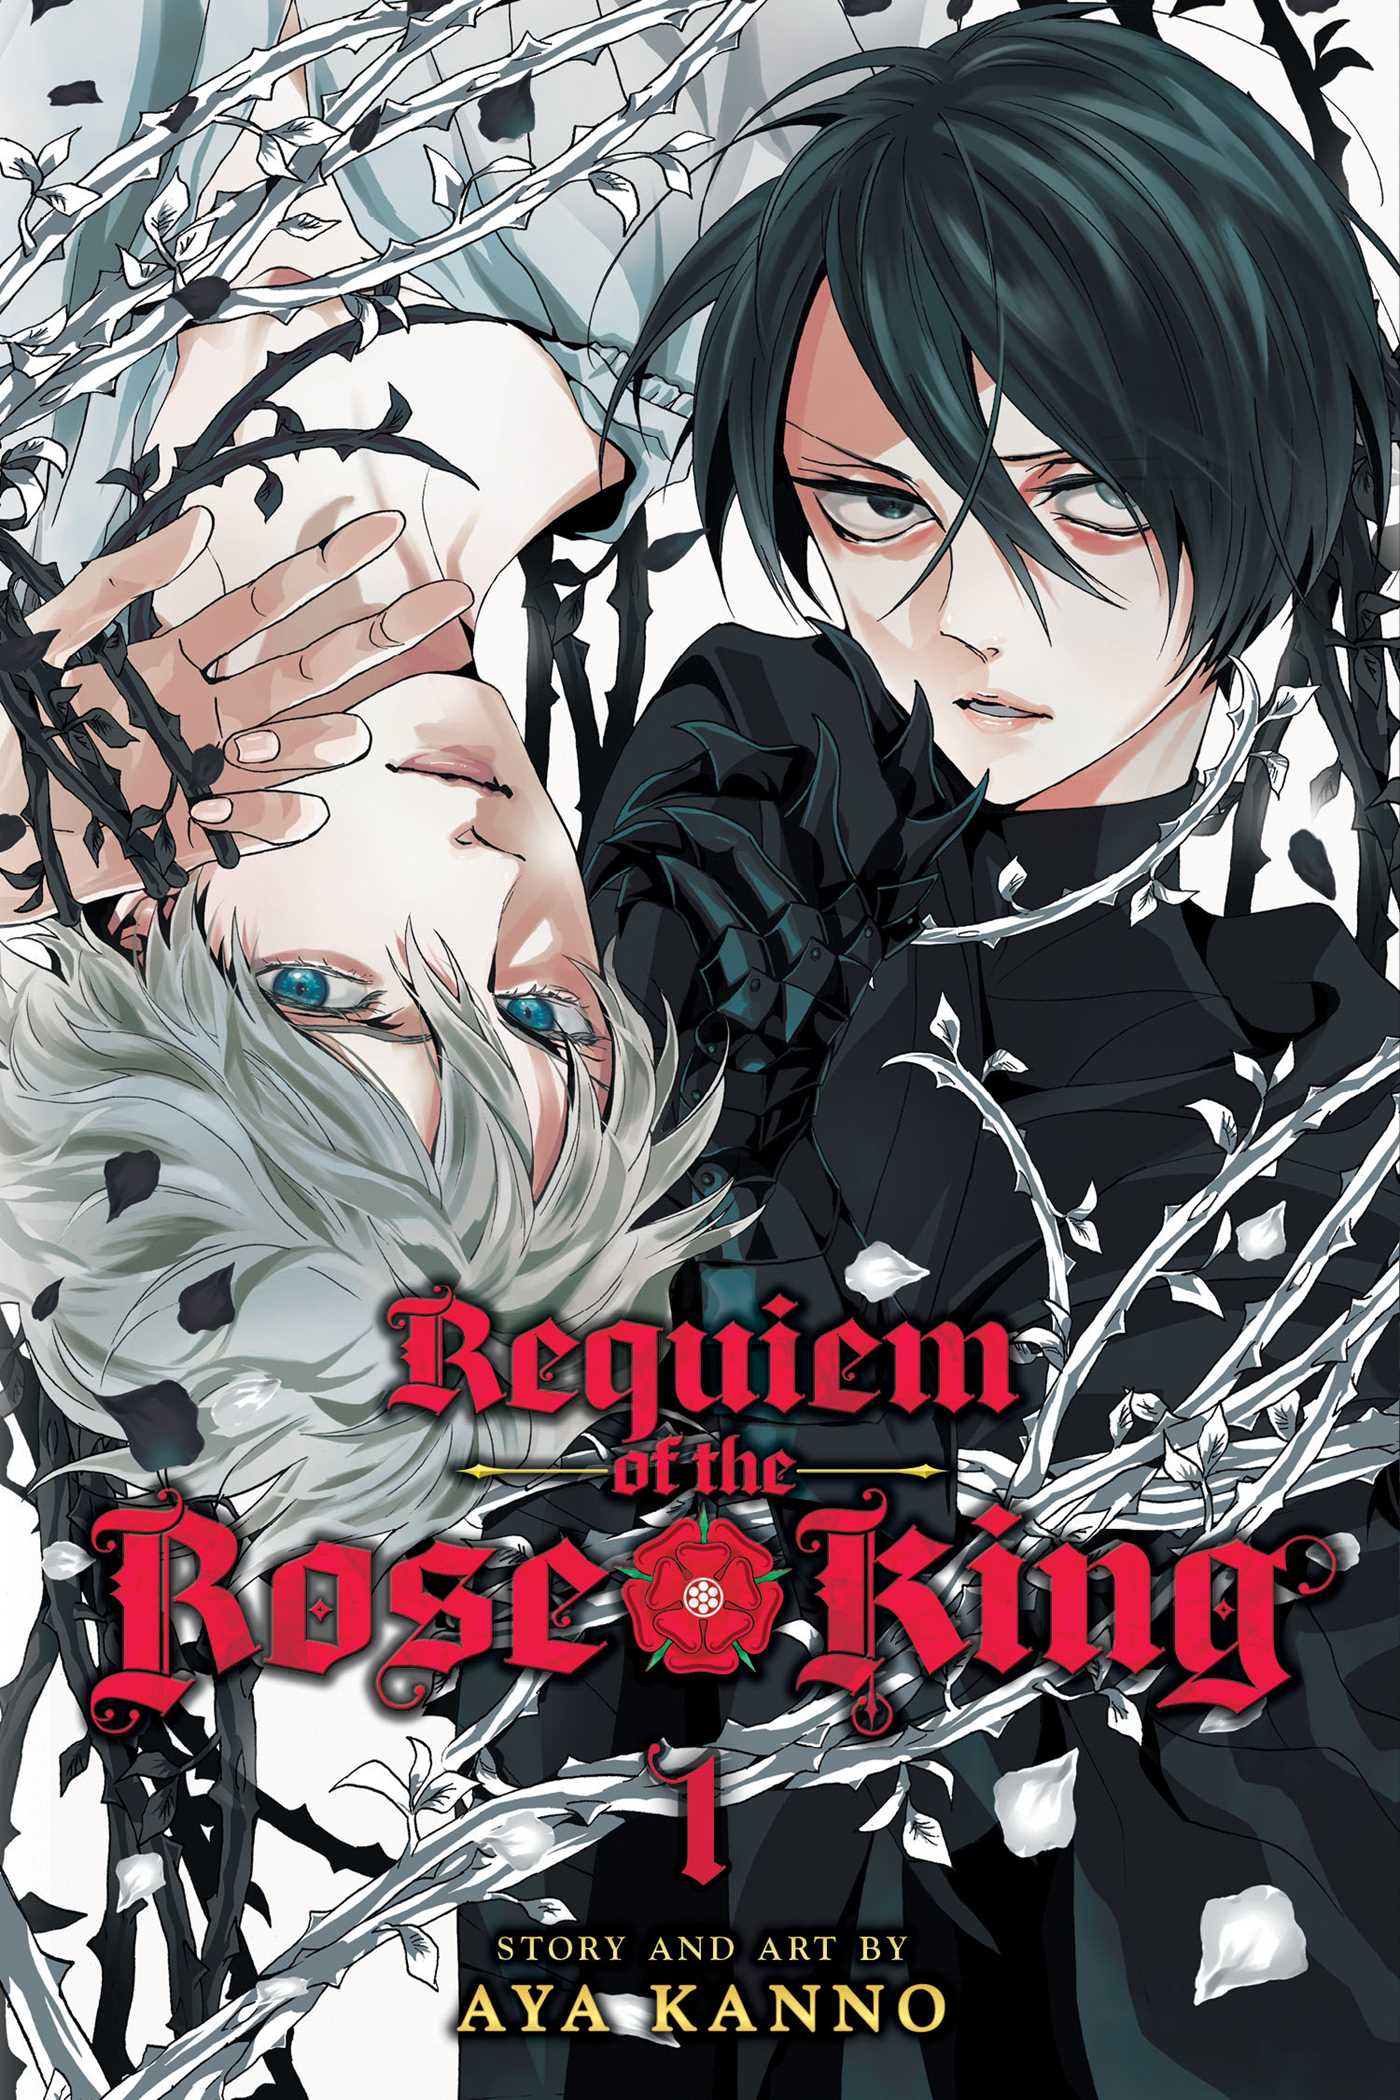 Requiem-of-the-rose-king-vol-1-9781421567785_hr